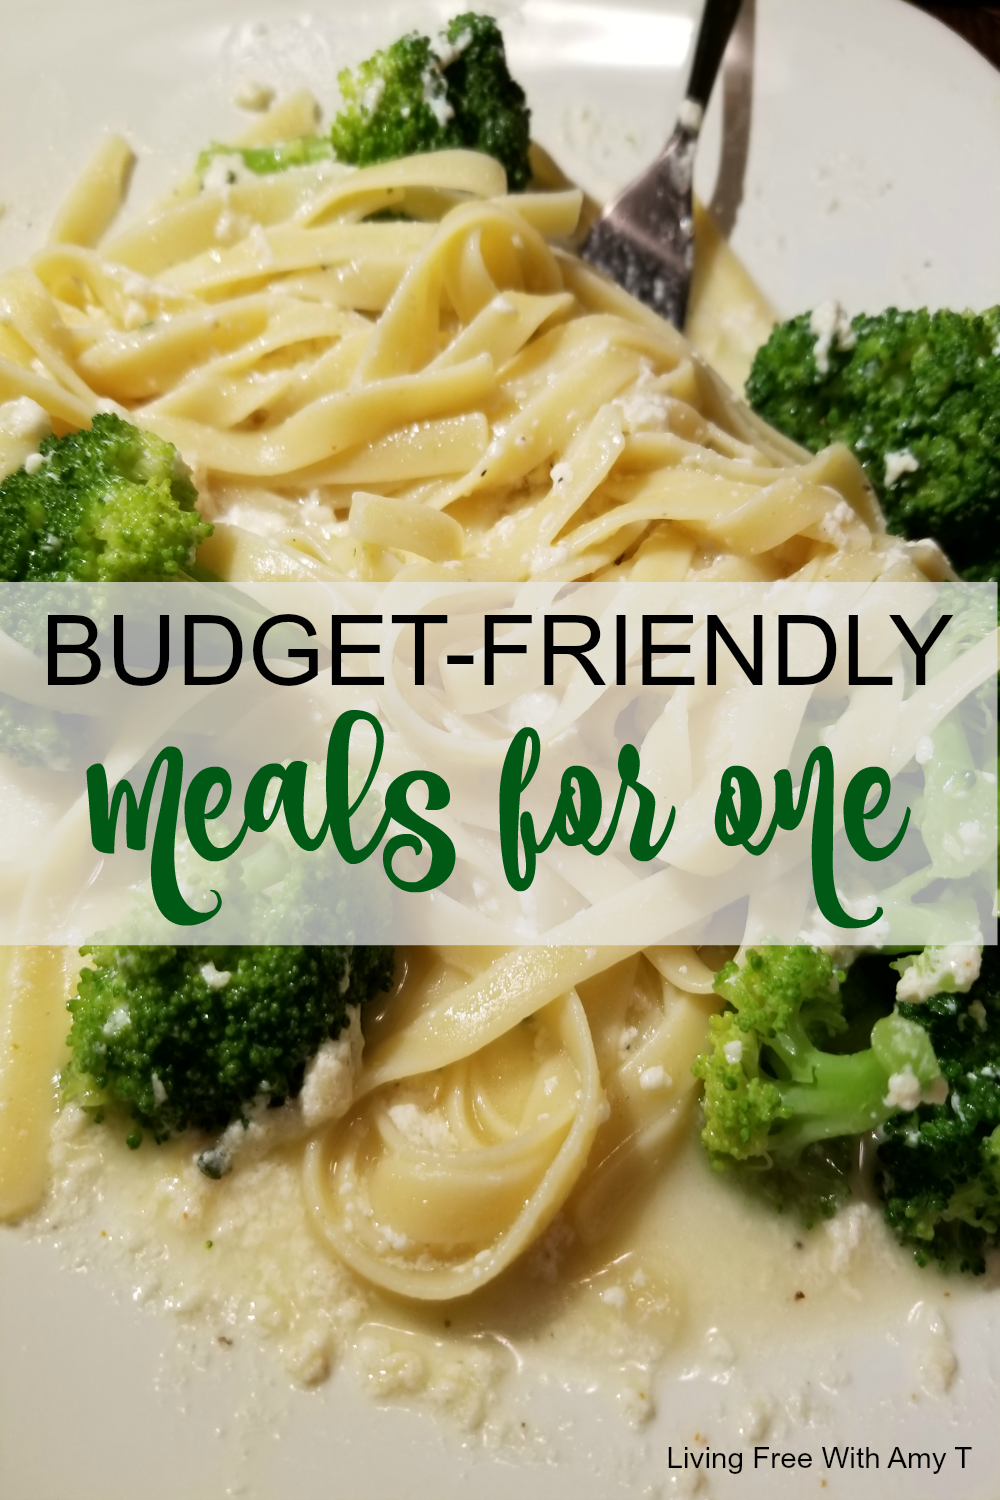 Eating alone for dinner but don't want to make too much food? No problem! Here are 5 easy meals for one person. Chicken, pasta, soup and more! These are quick, easy, budget-friendly recipes already tried with honest reviews.